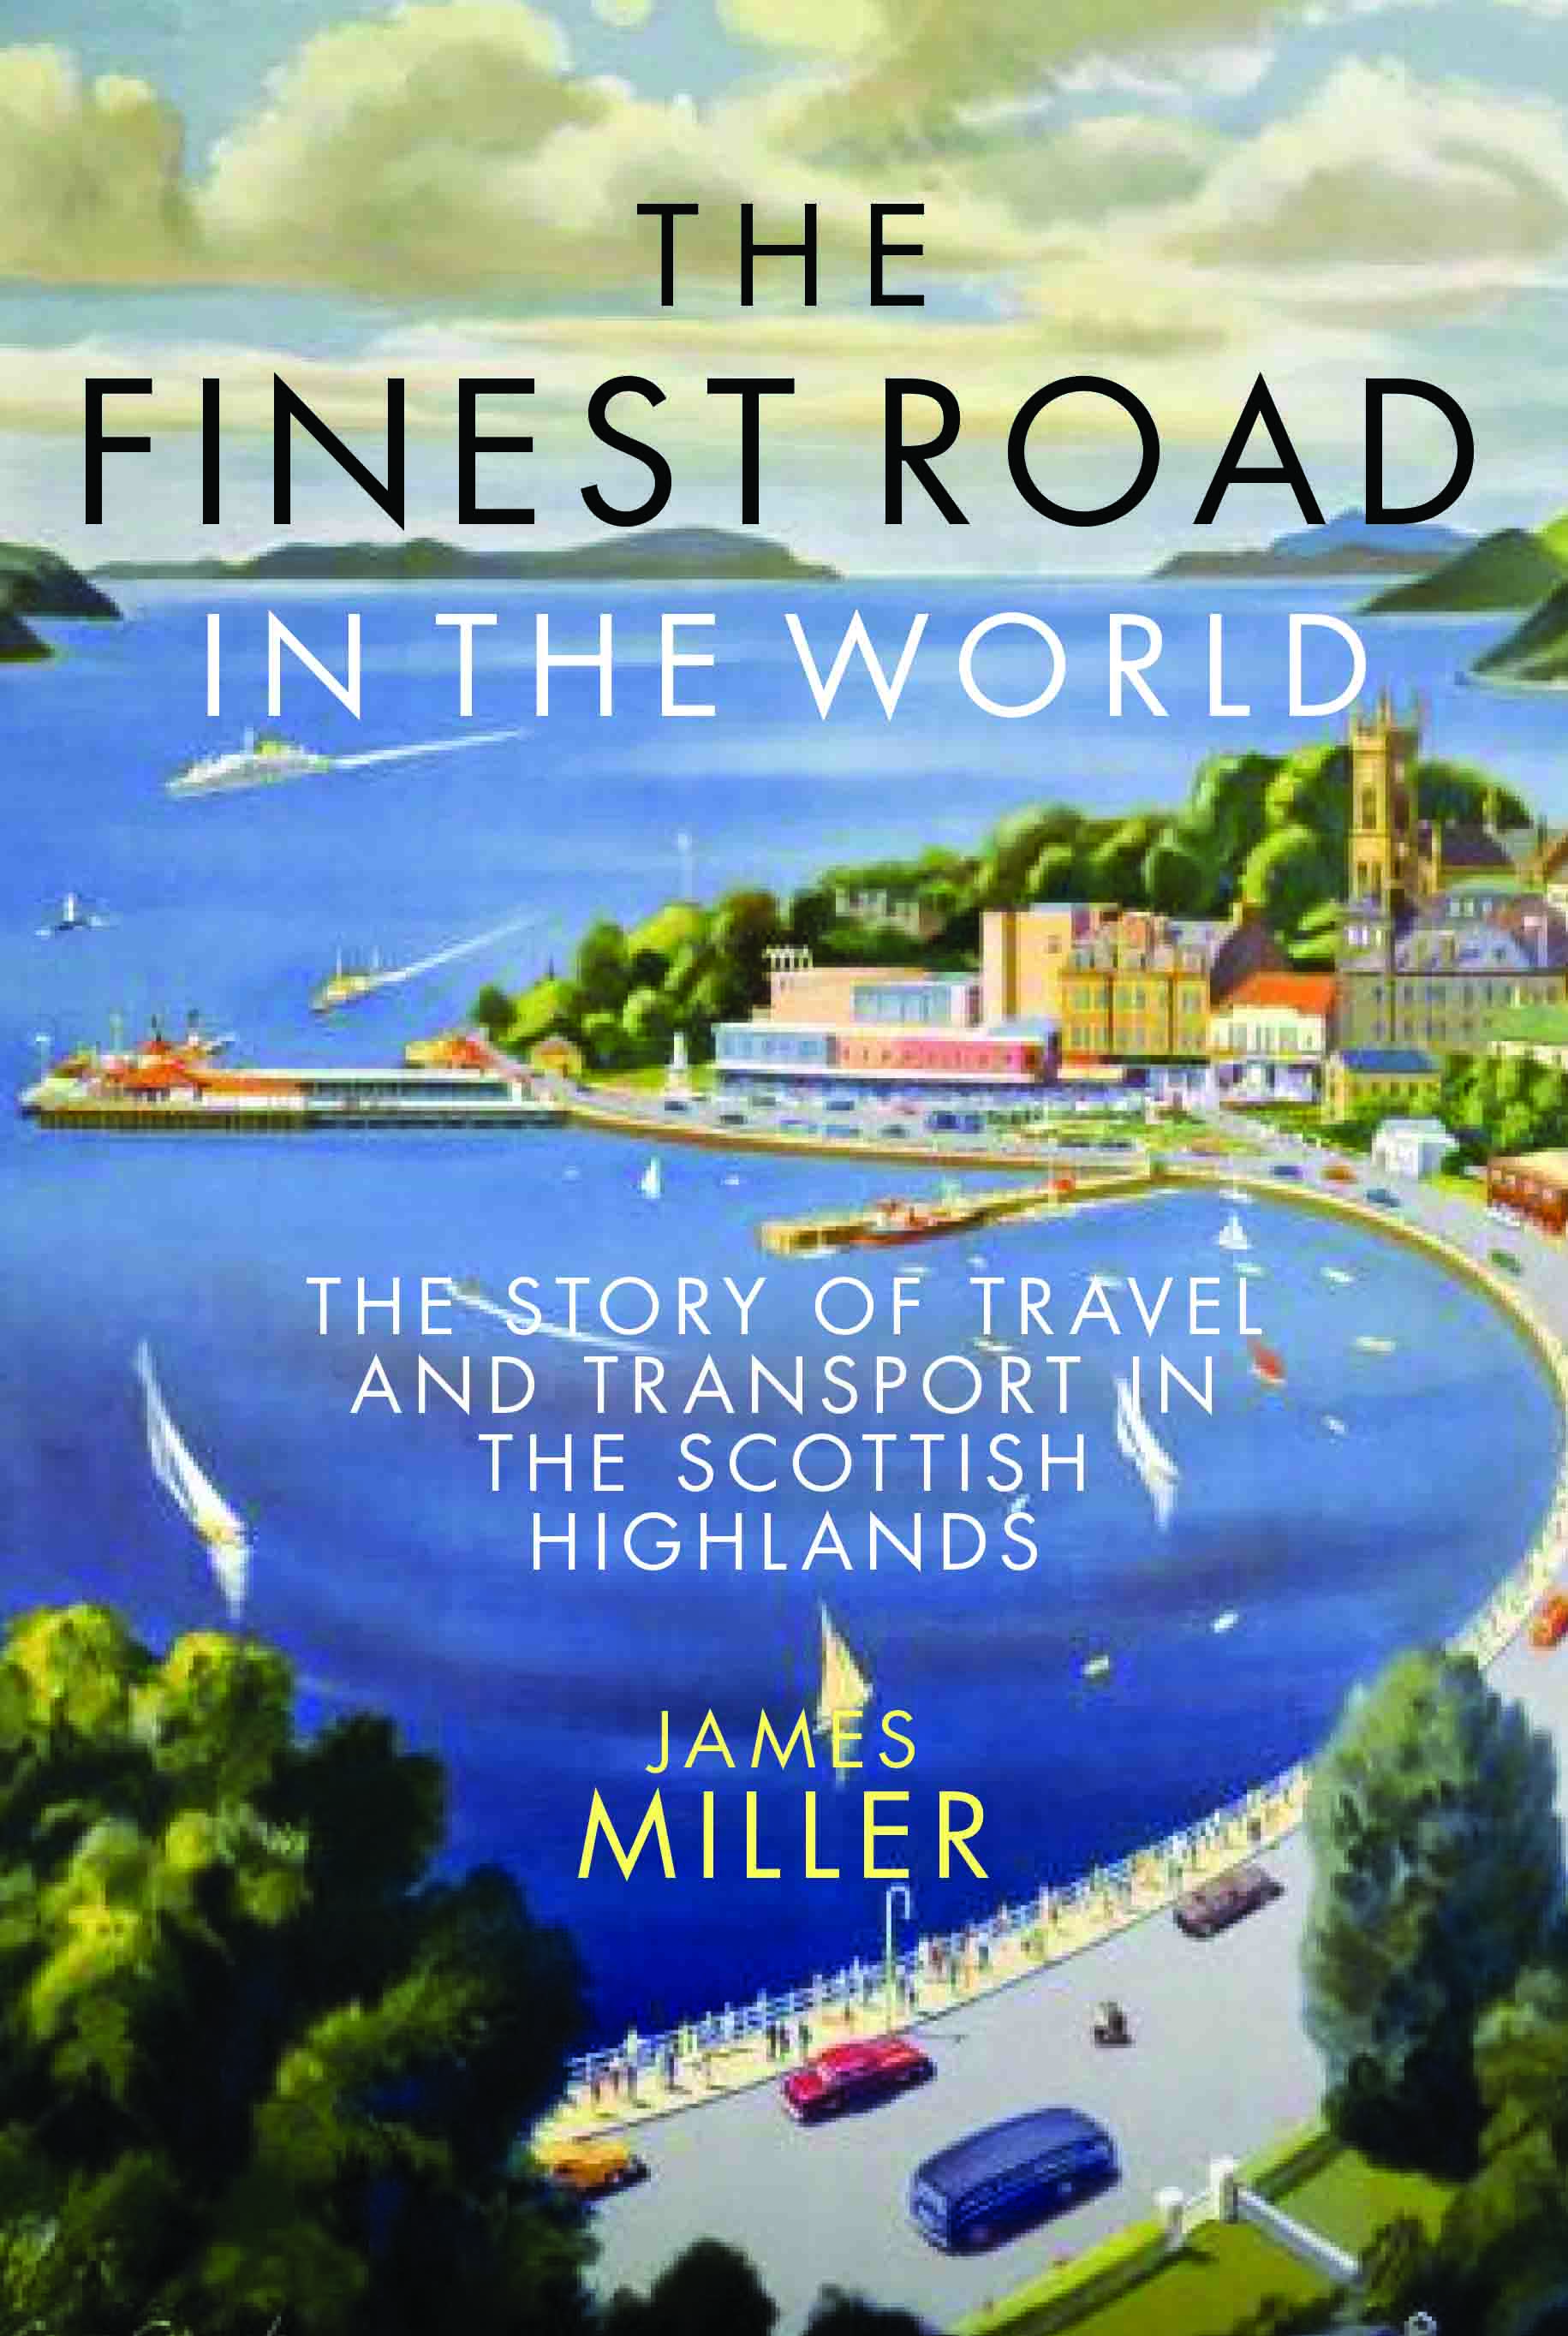 Finest road in the world book cover